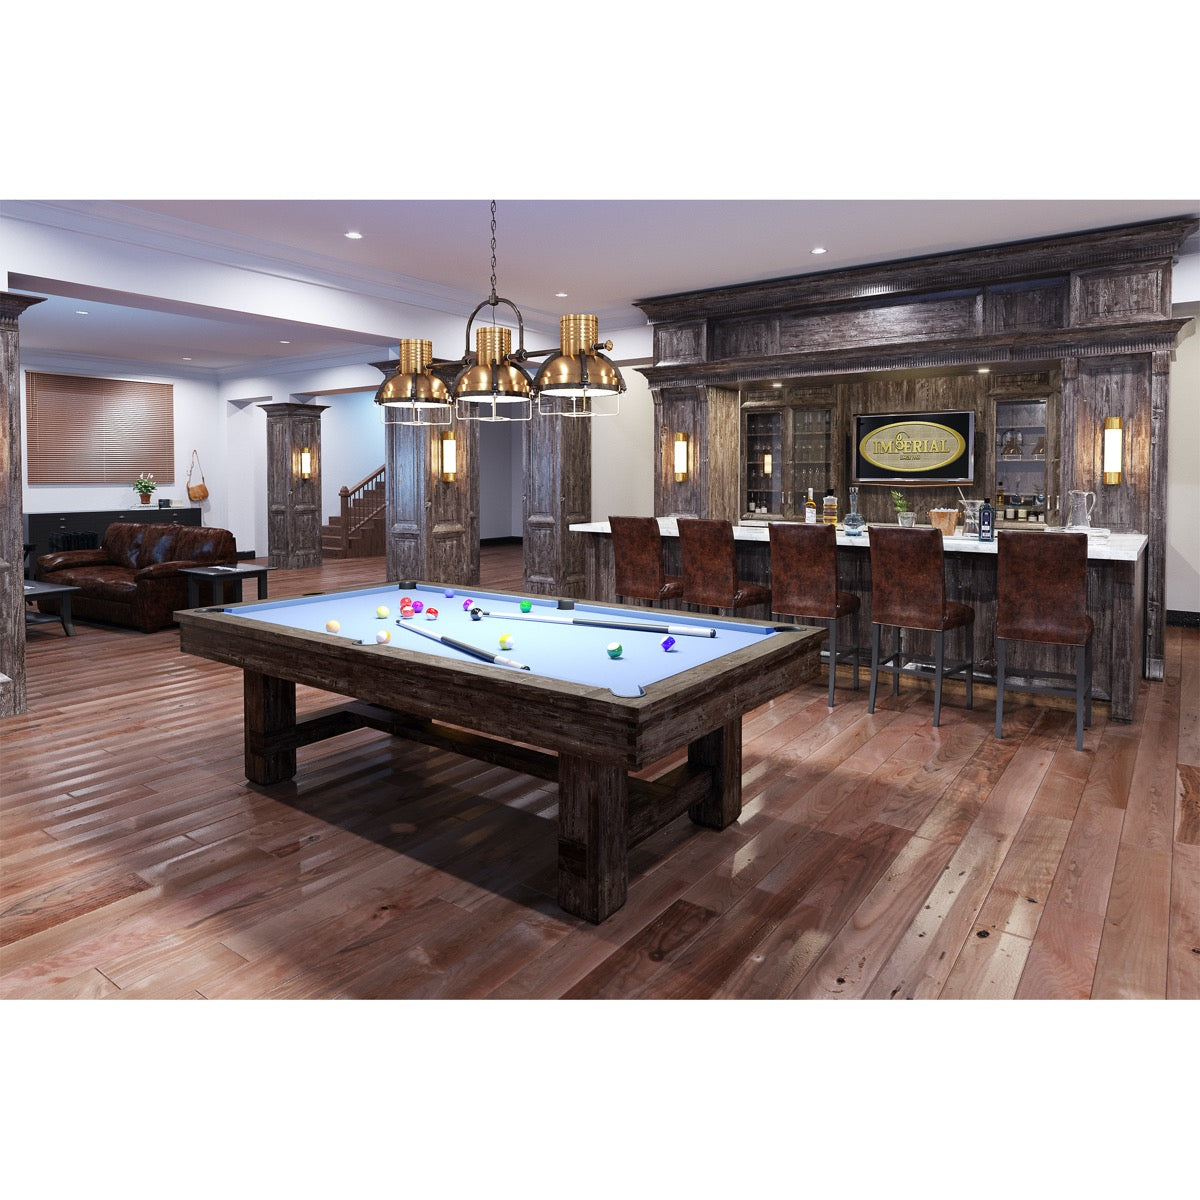 Nevada - Blatt Billiards